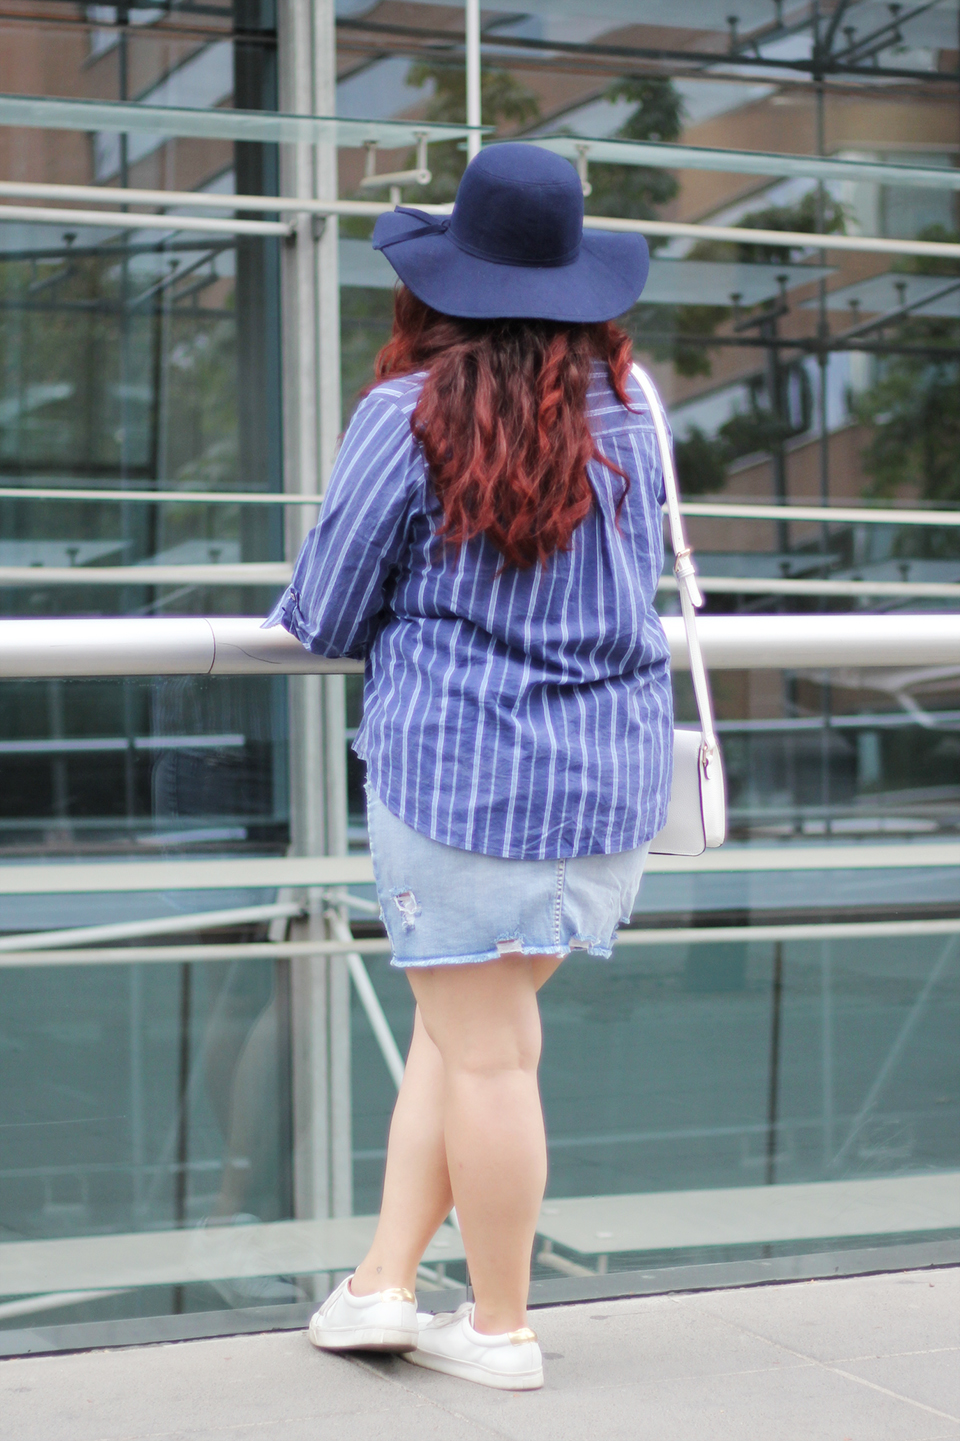 fashion-blogger-denim-skirt-forever21-yoins-blue-hat-lookchic-quay sunglasses-mexican-ripped-stripes-shirt-prune-santiago